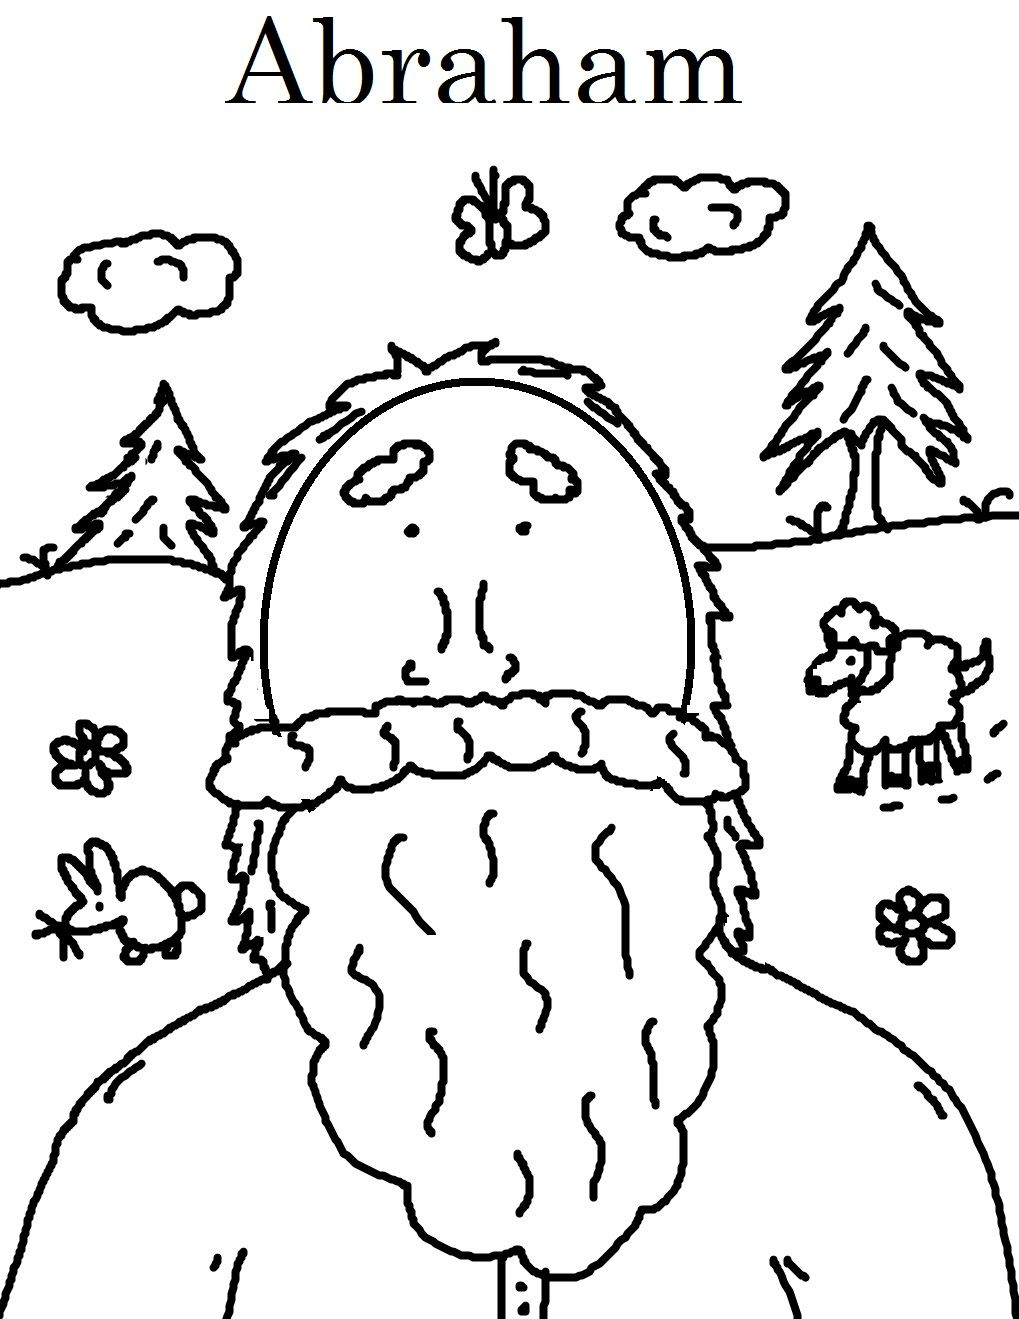 abraham coloring pagesjpg 10191319 pixels - Abraham Coloring Pages